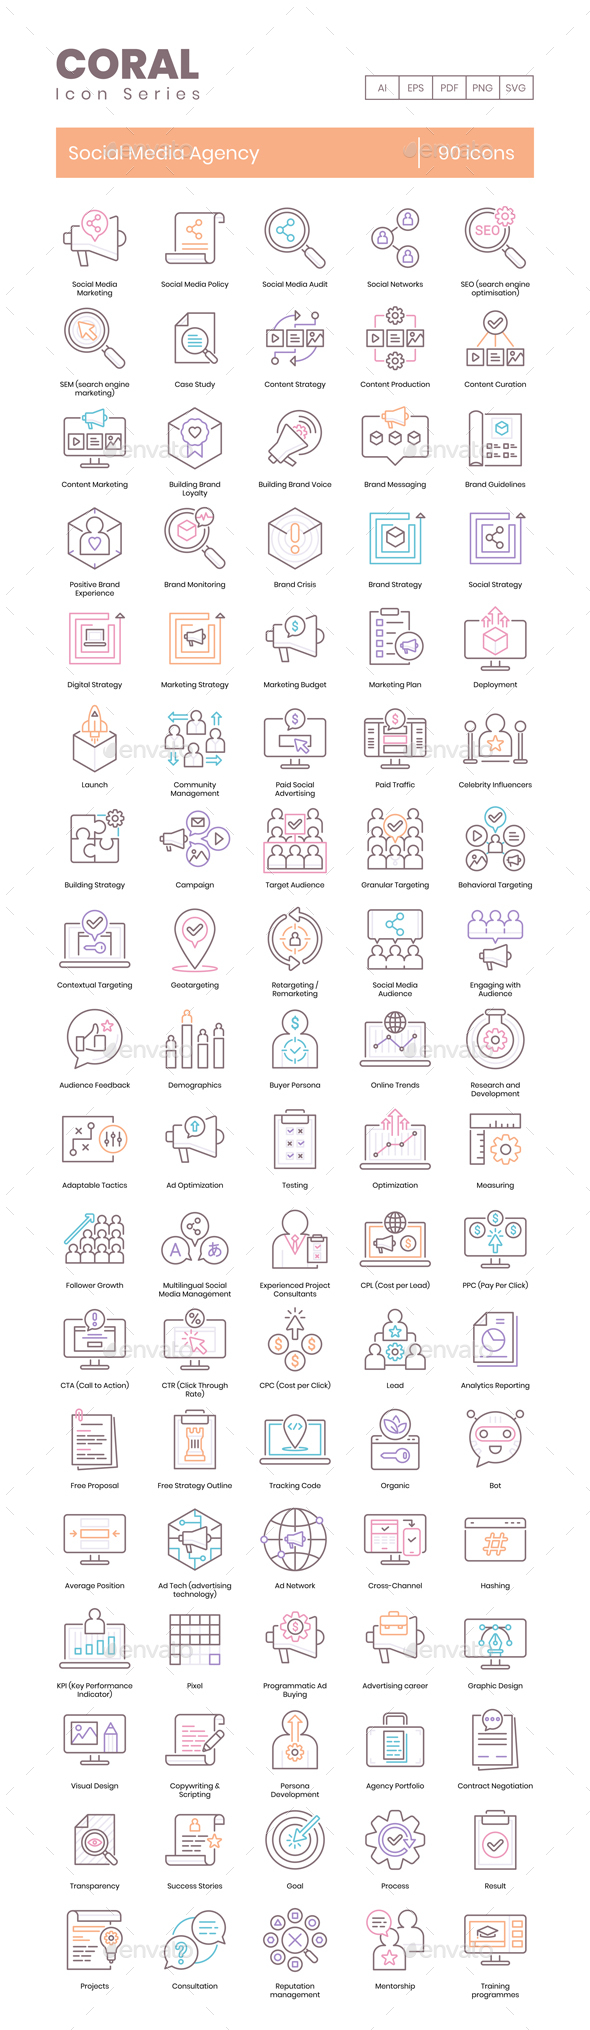 90 Social Media Agency Icons - Coral Series